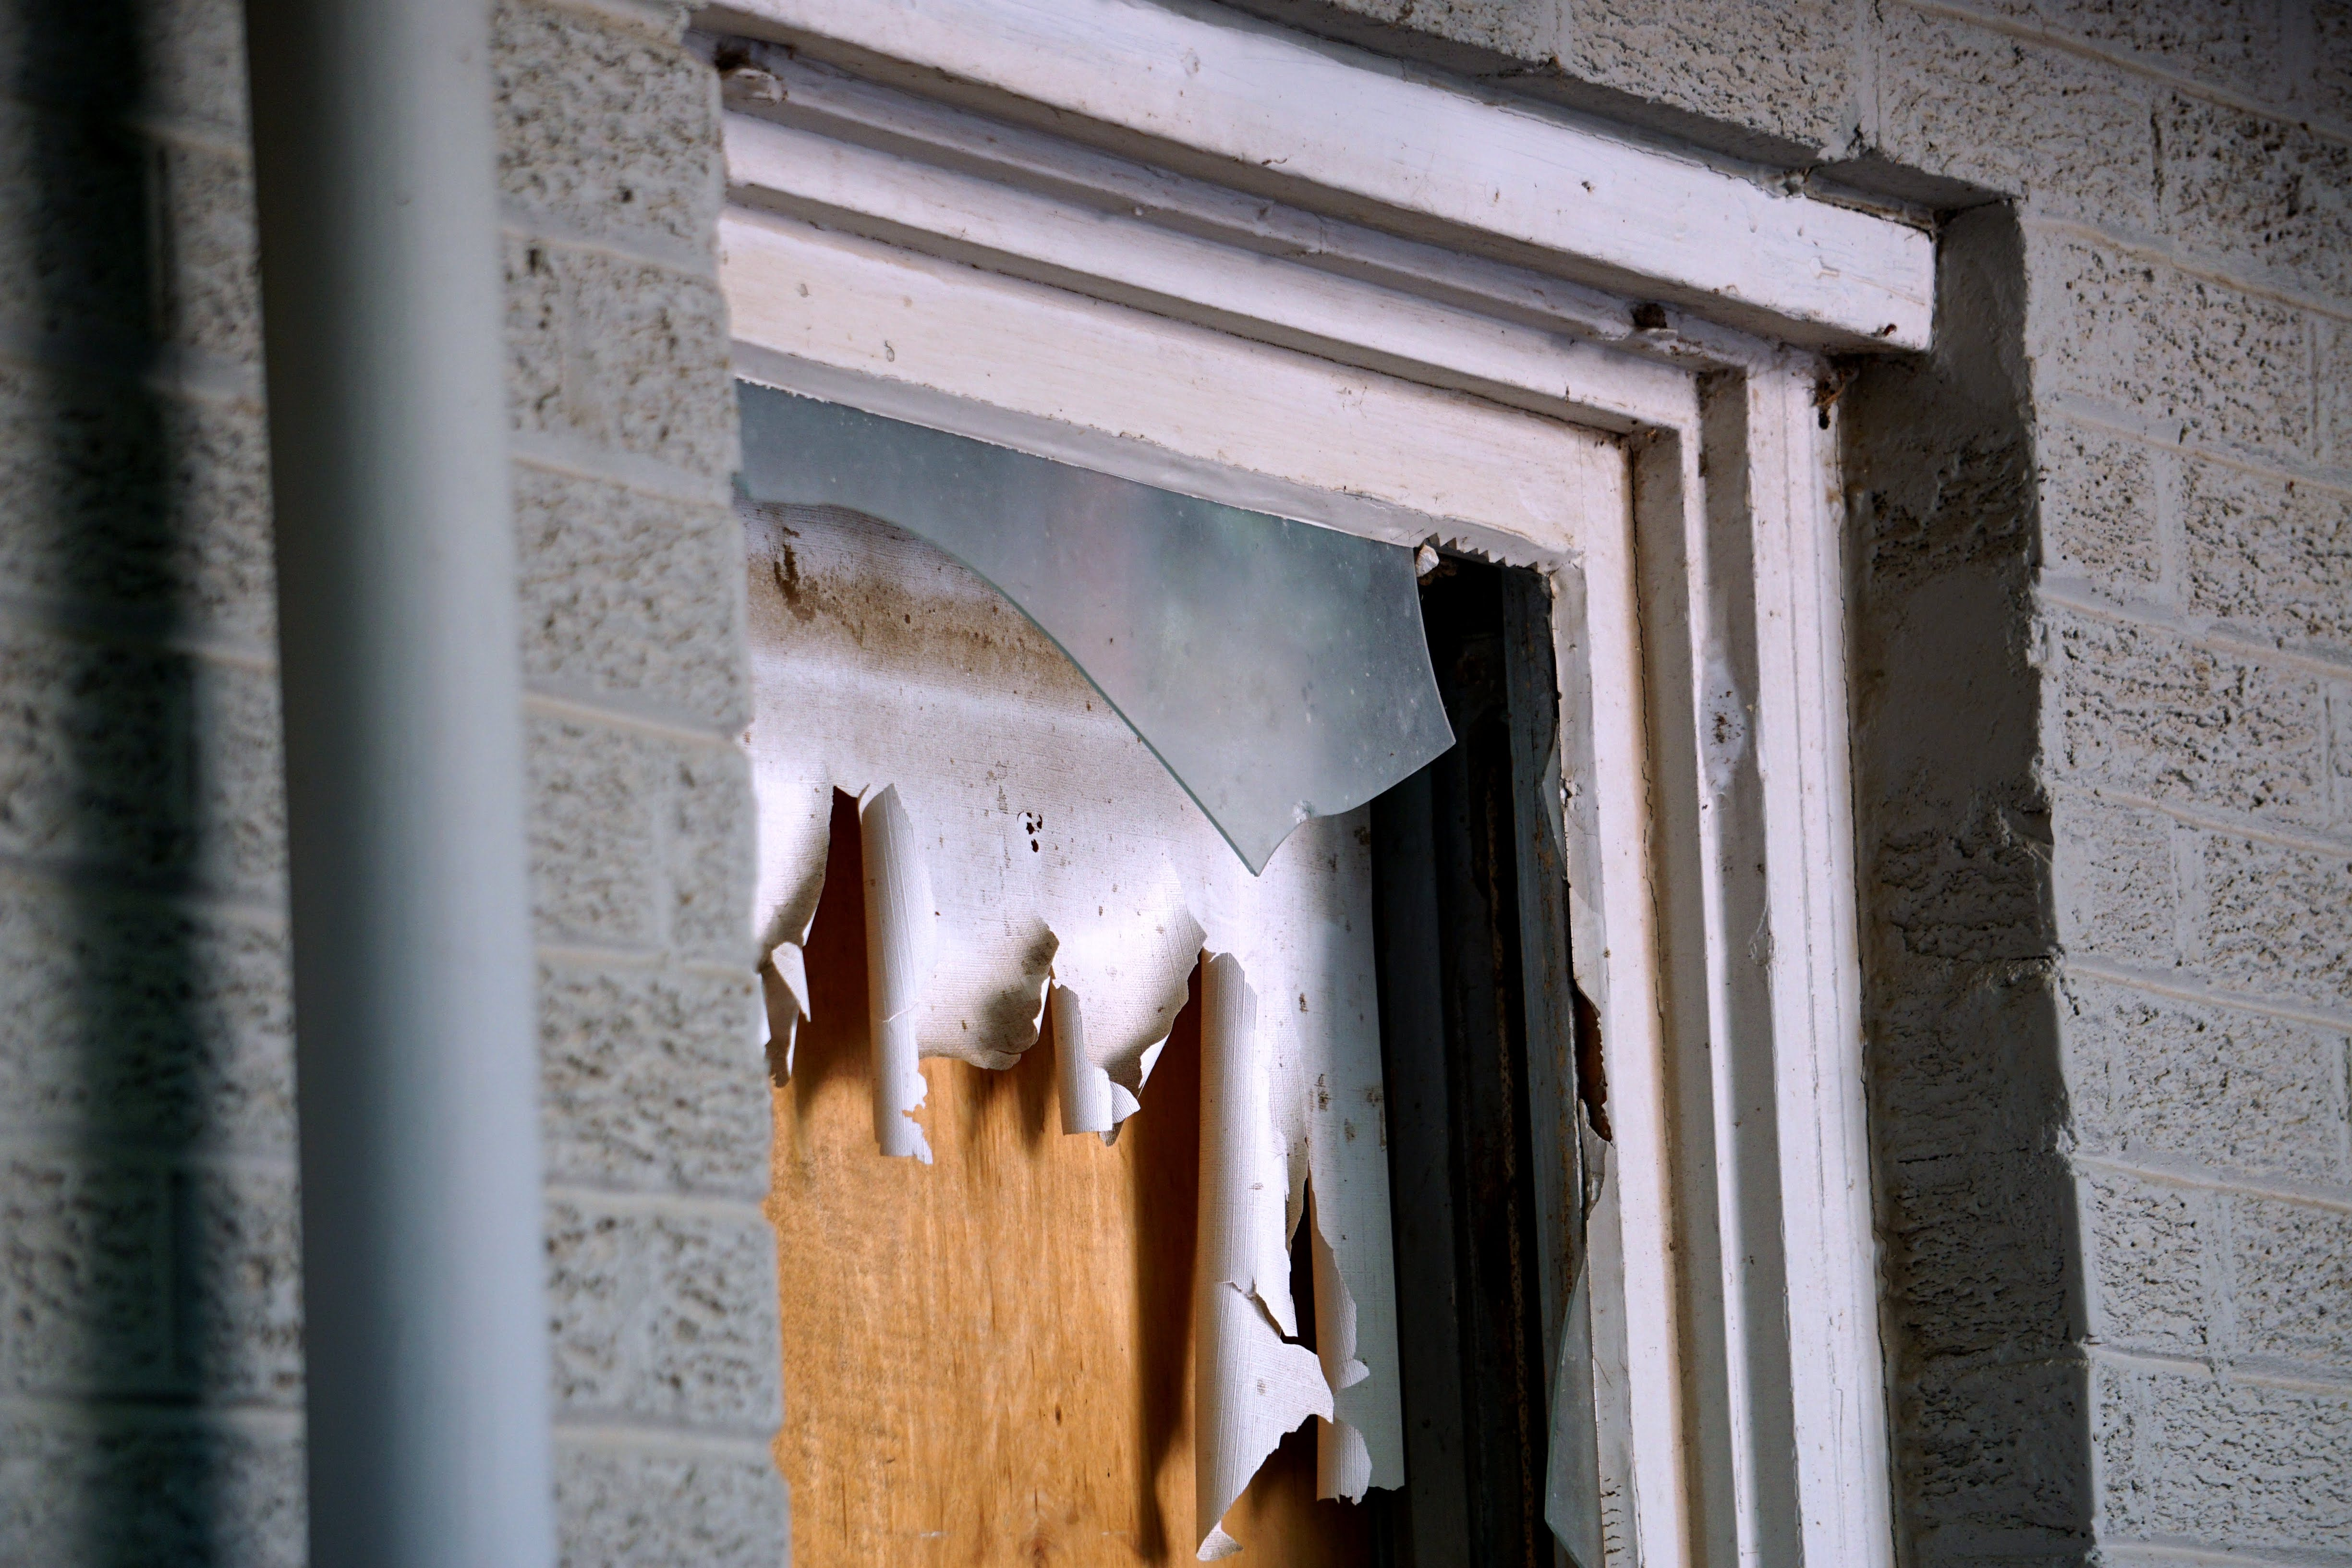 Window boards will help protect your windows during a natural disaster